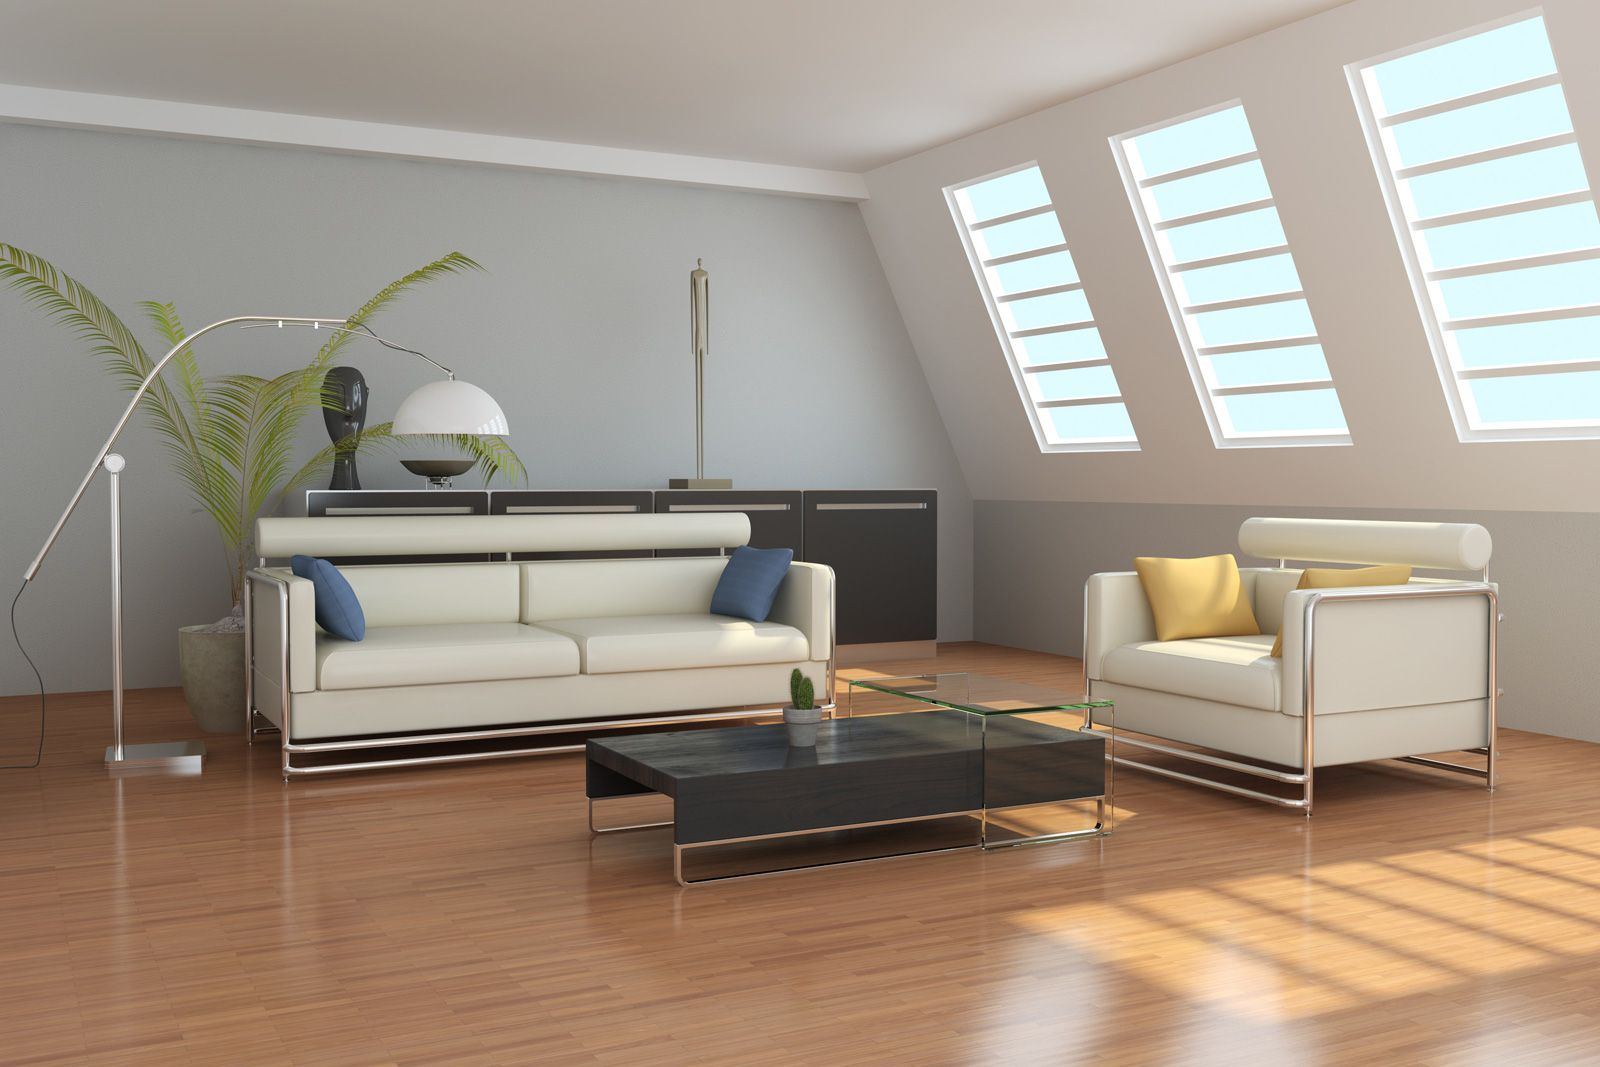 17 best images about room ideas on pinterest modern living rooms wooden  houses and living room designs. Small Spaces Design Ideas  Simple Small Home Decorating Ideas On